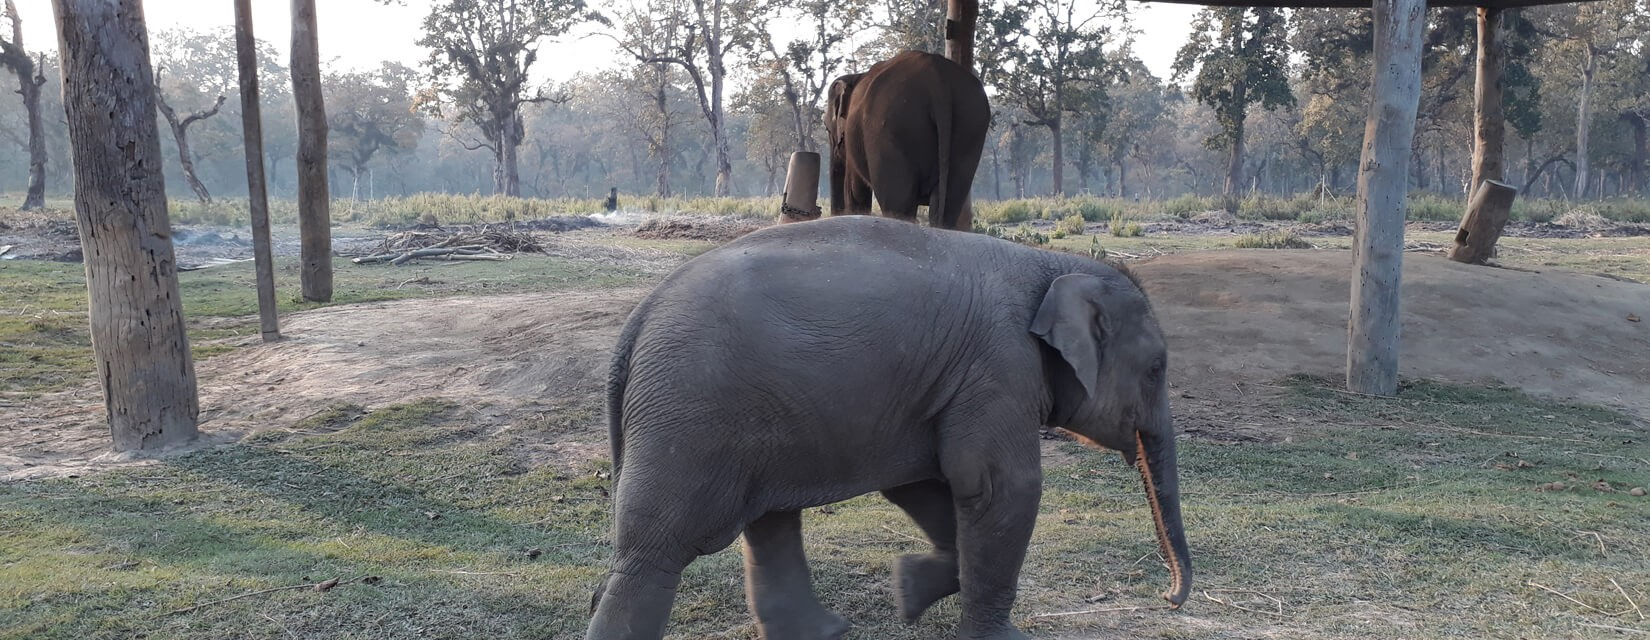 Elephant- Chitwan - Jungle Safari